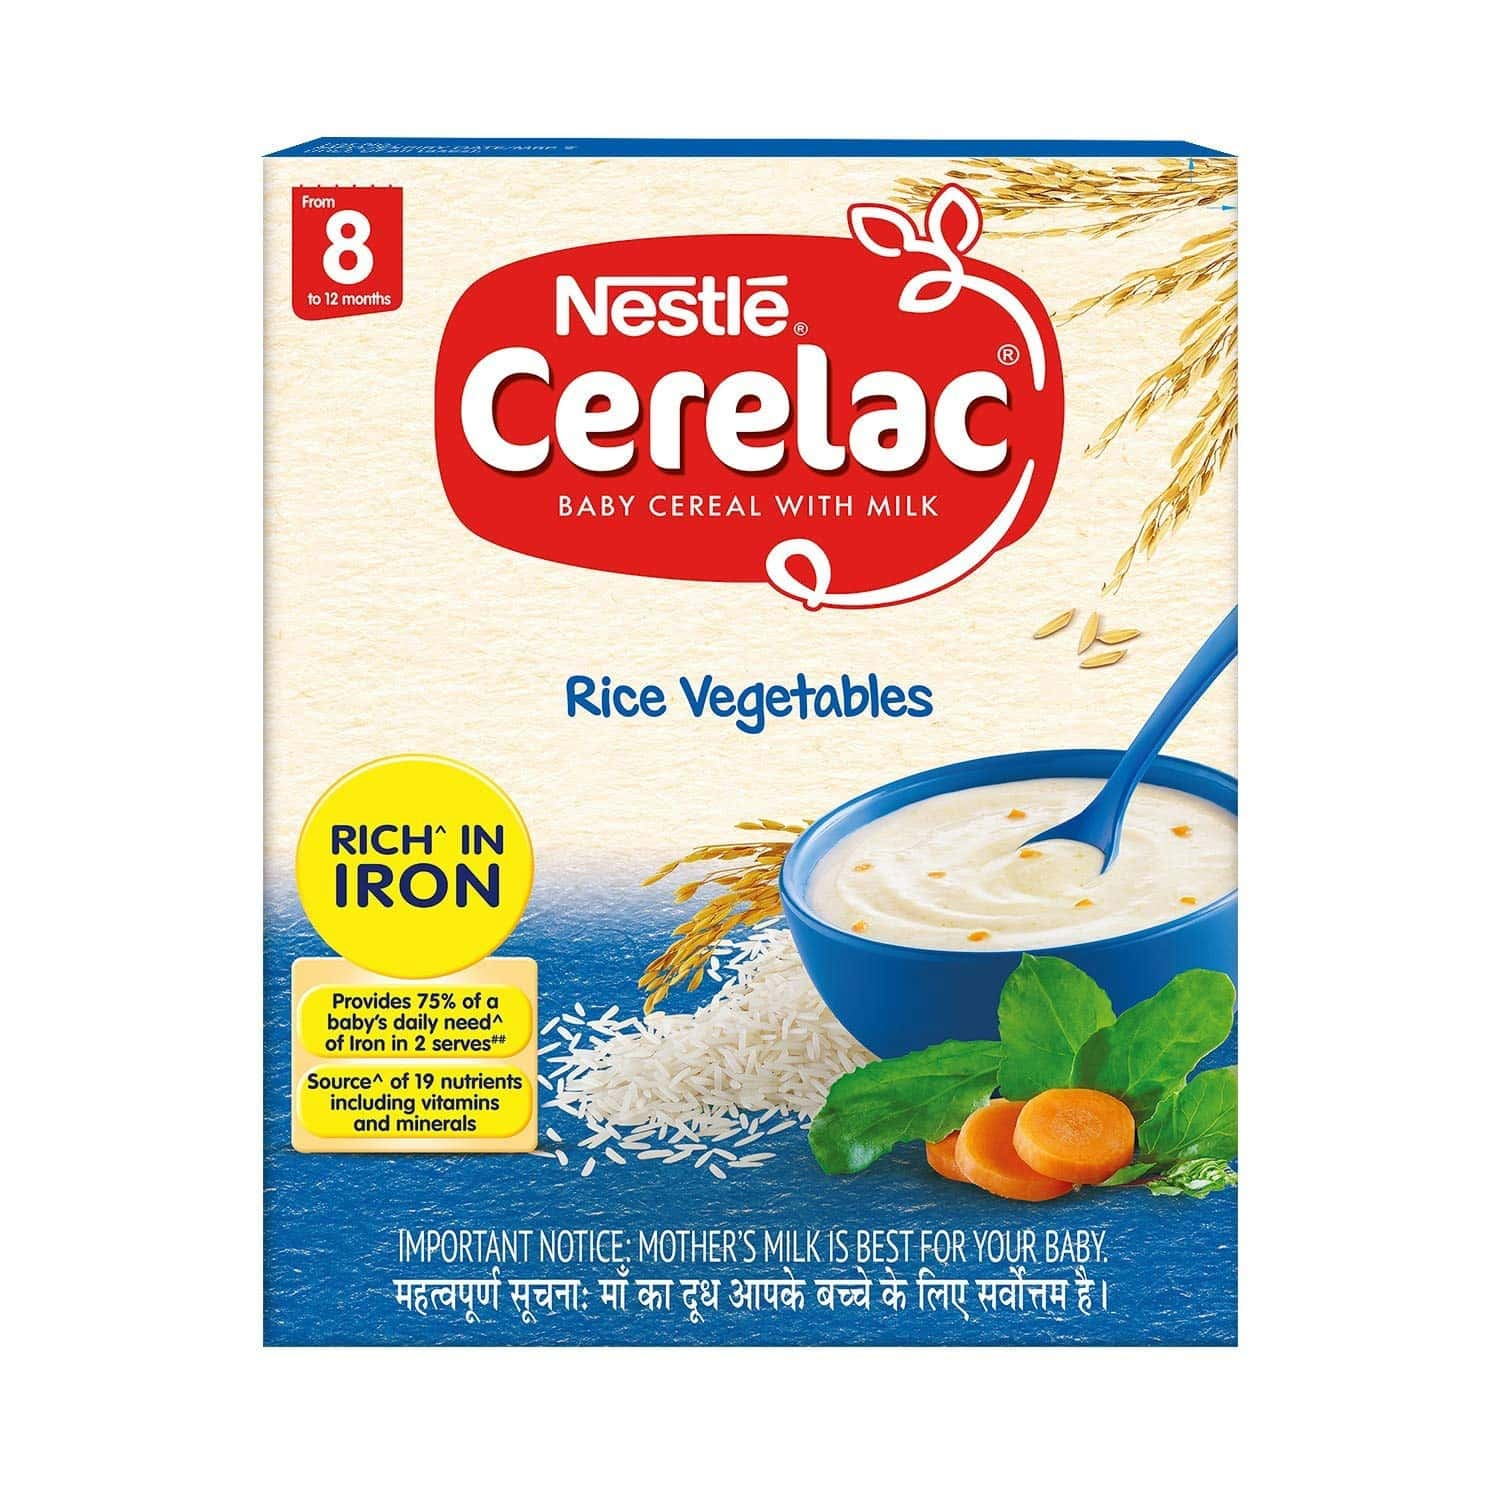 Nestle Cerelac Baby Food Milk Rice Vegetables (from 8 Months) Box Of 300 G